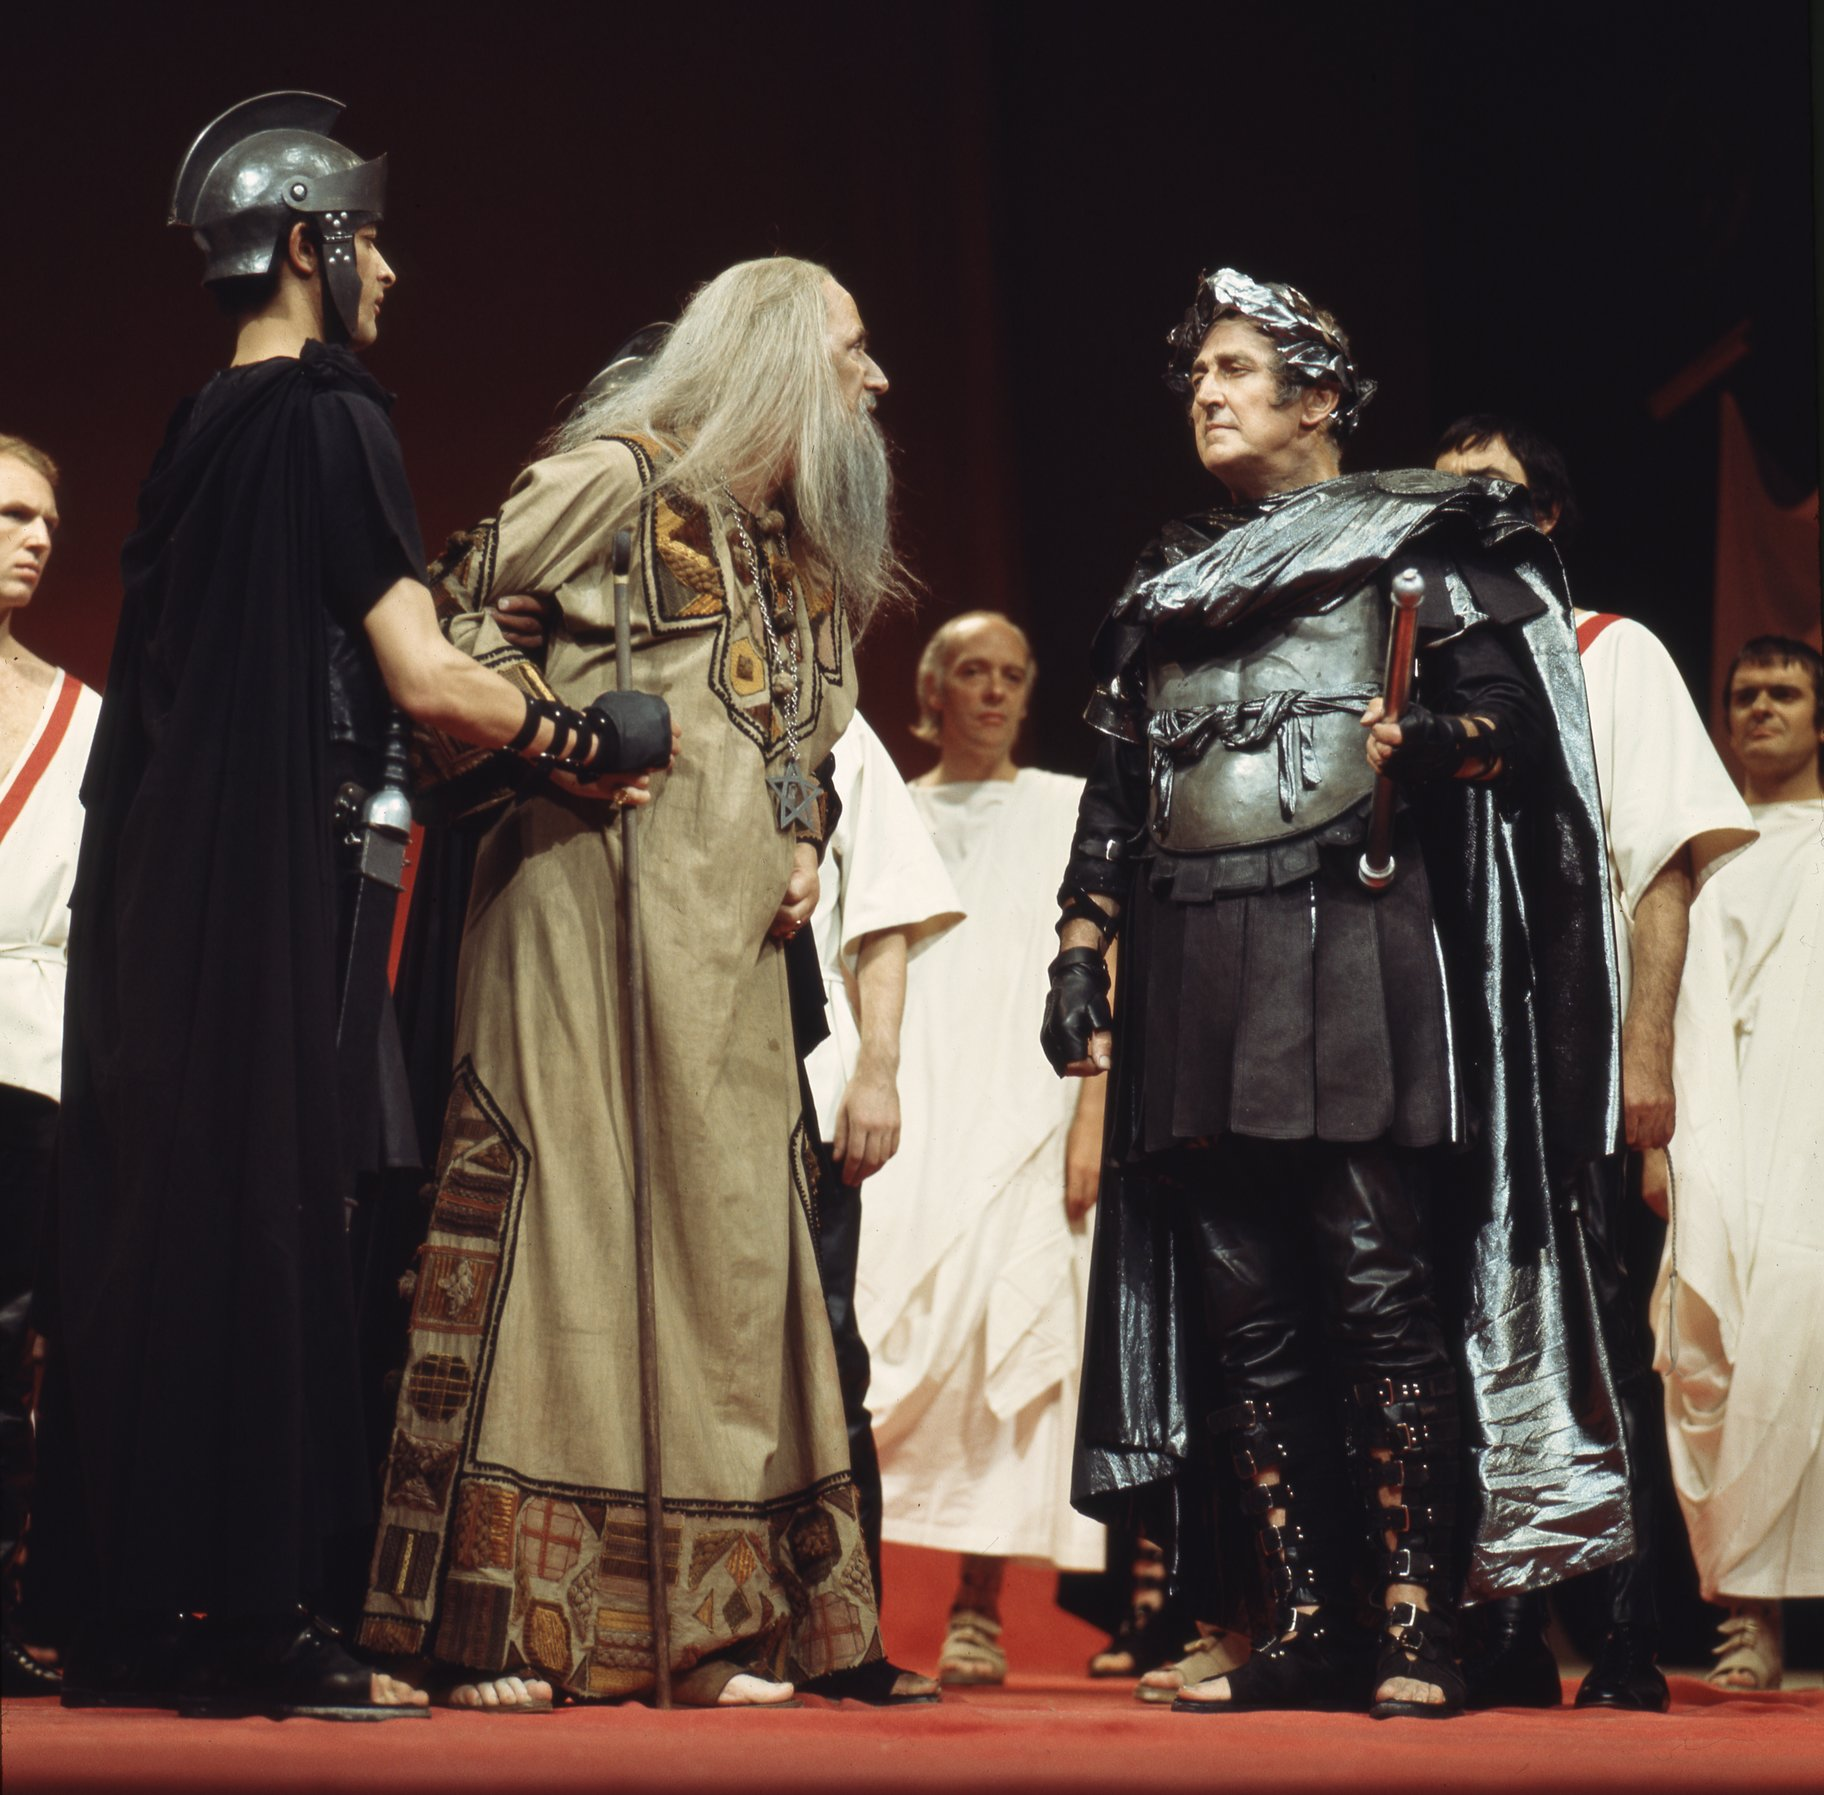 The Soothsayer warns Julius Caesar, the Soothsayer is being restrained by a guard